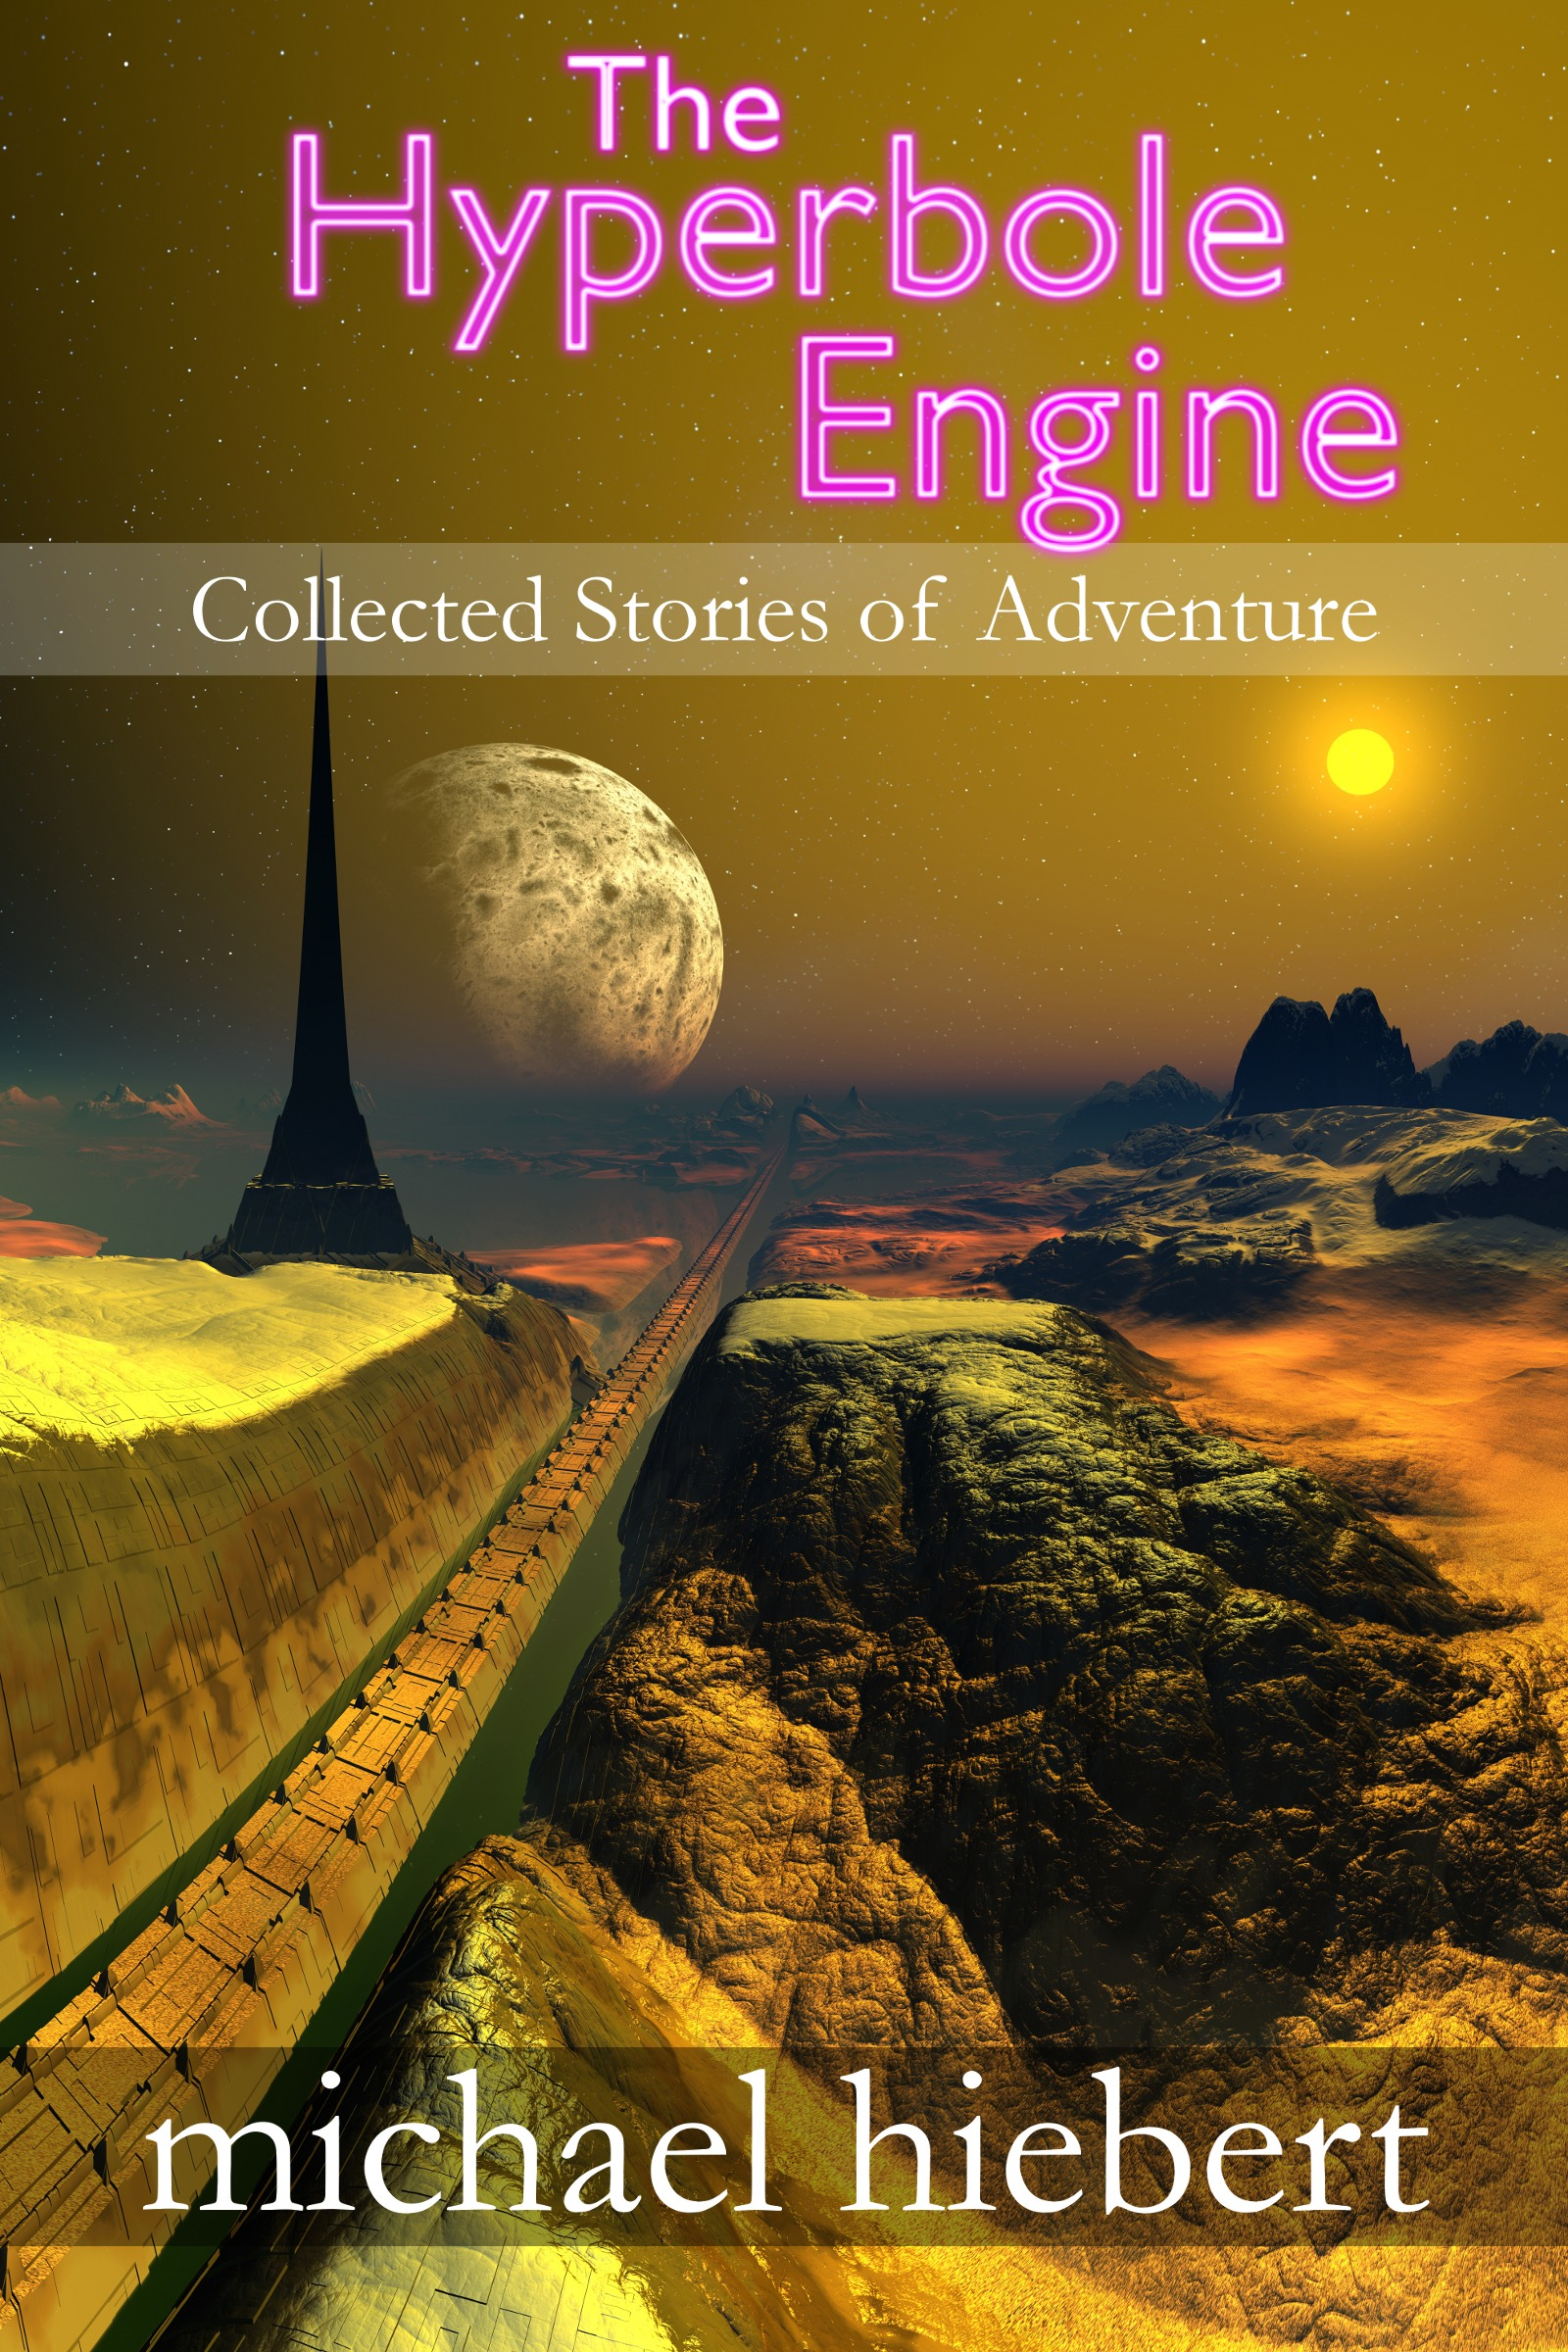 The Hyperbole Engine: Collected Stories of Adventure By: Michael Hiebert